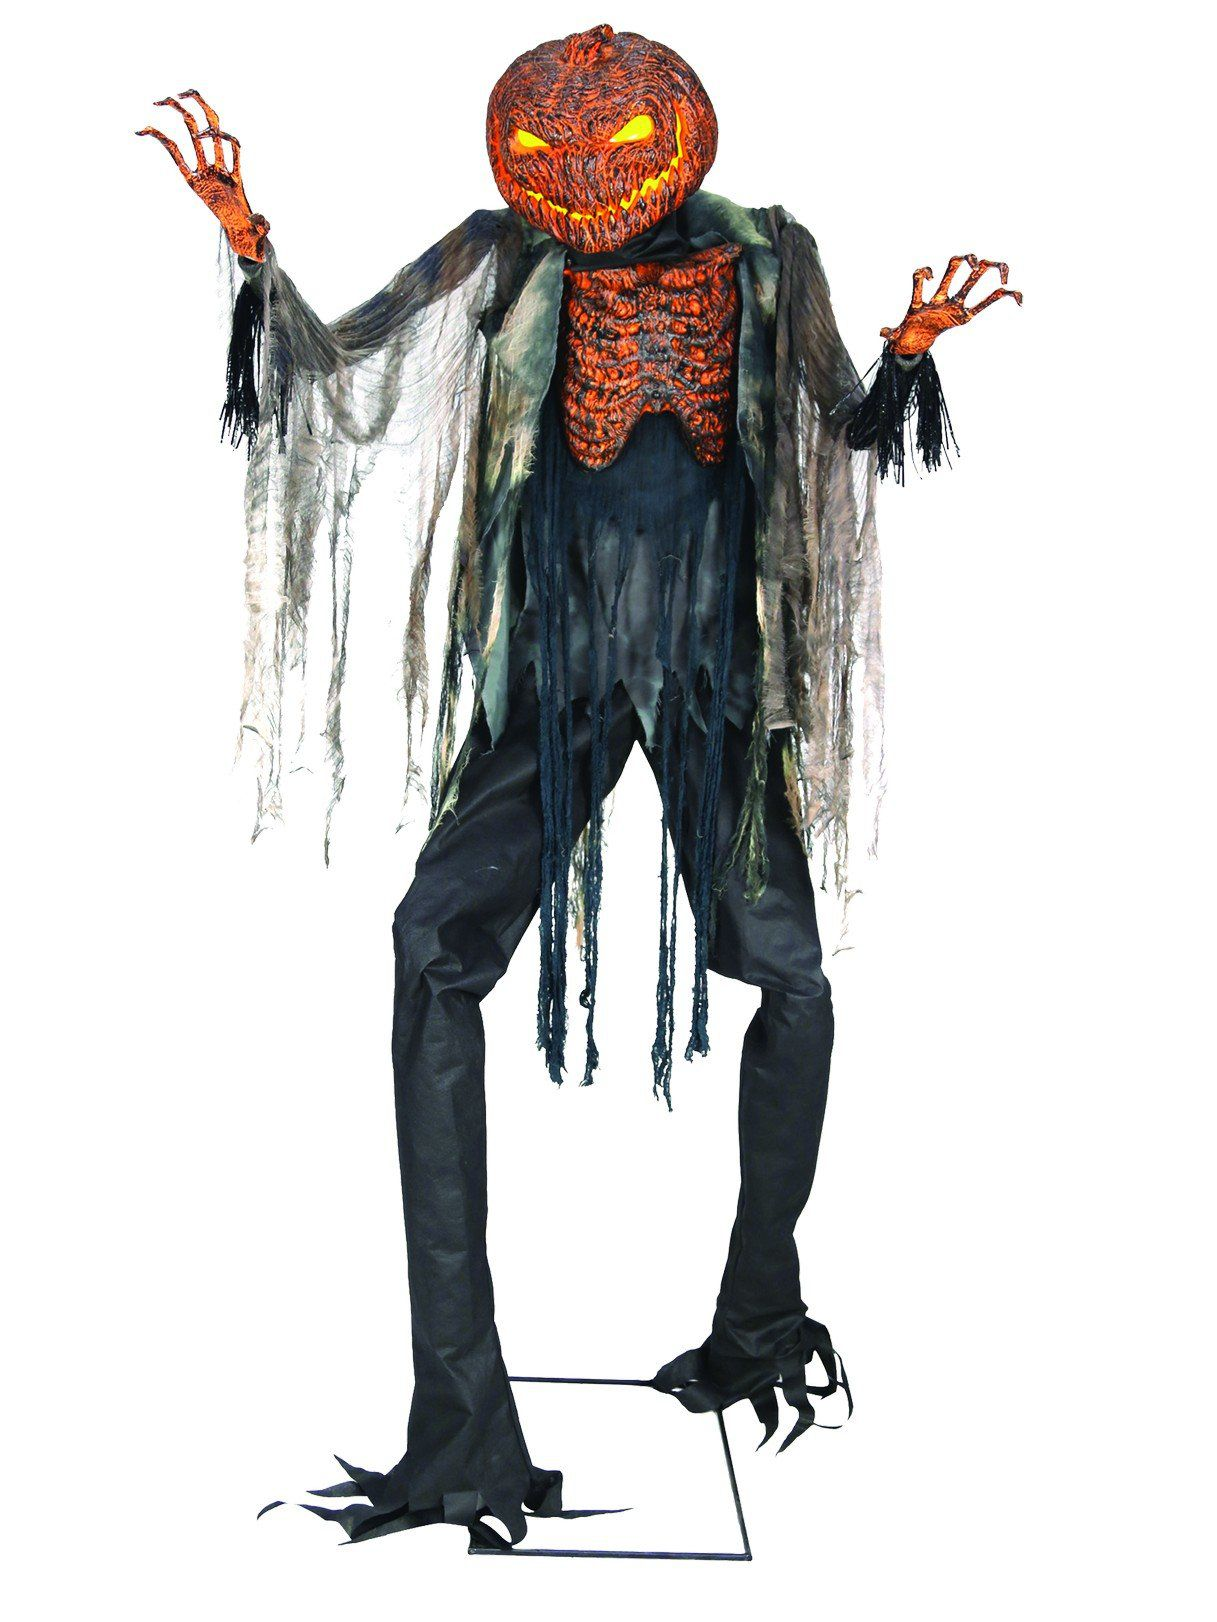 7 Scorched Scarecrow Decoration Halloween Decorations for